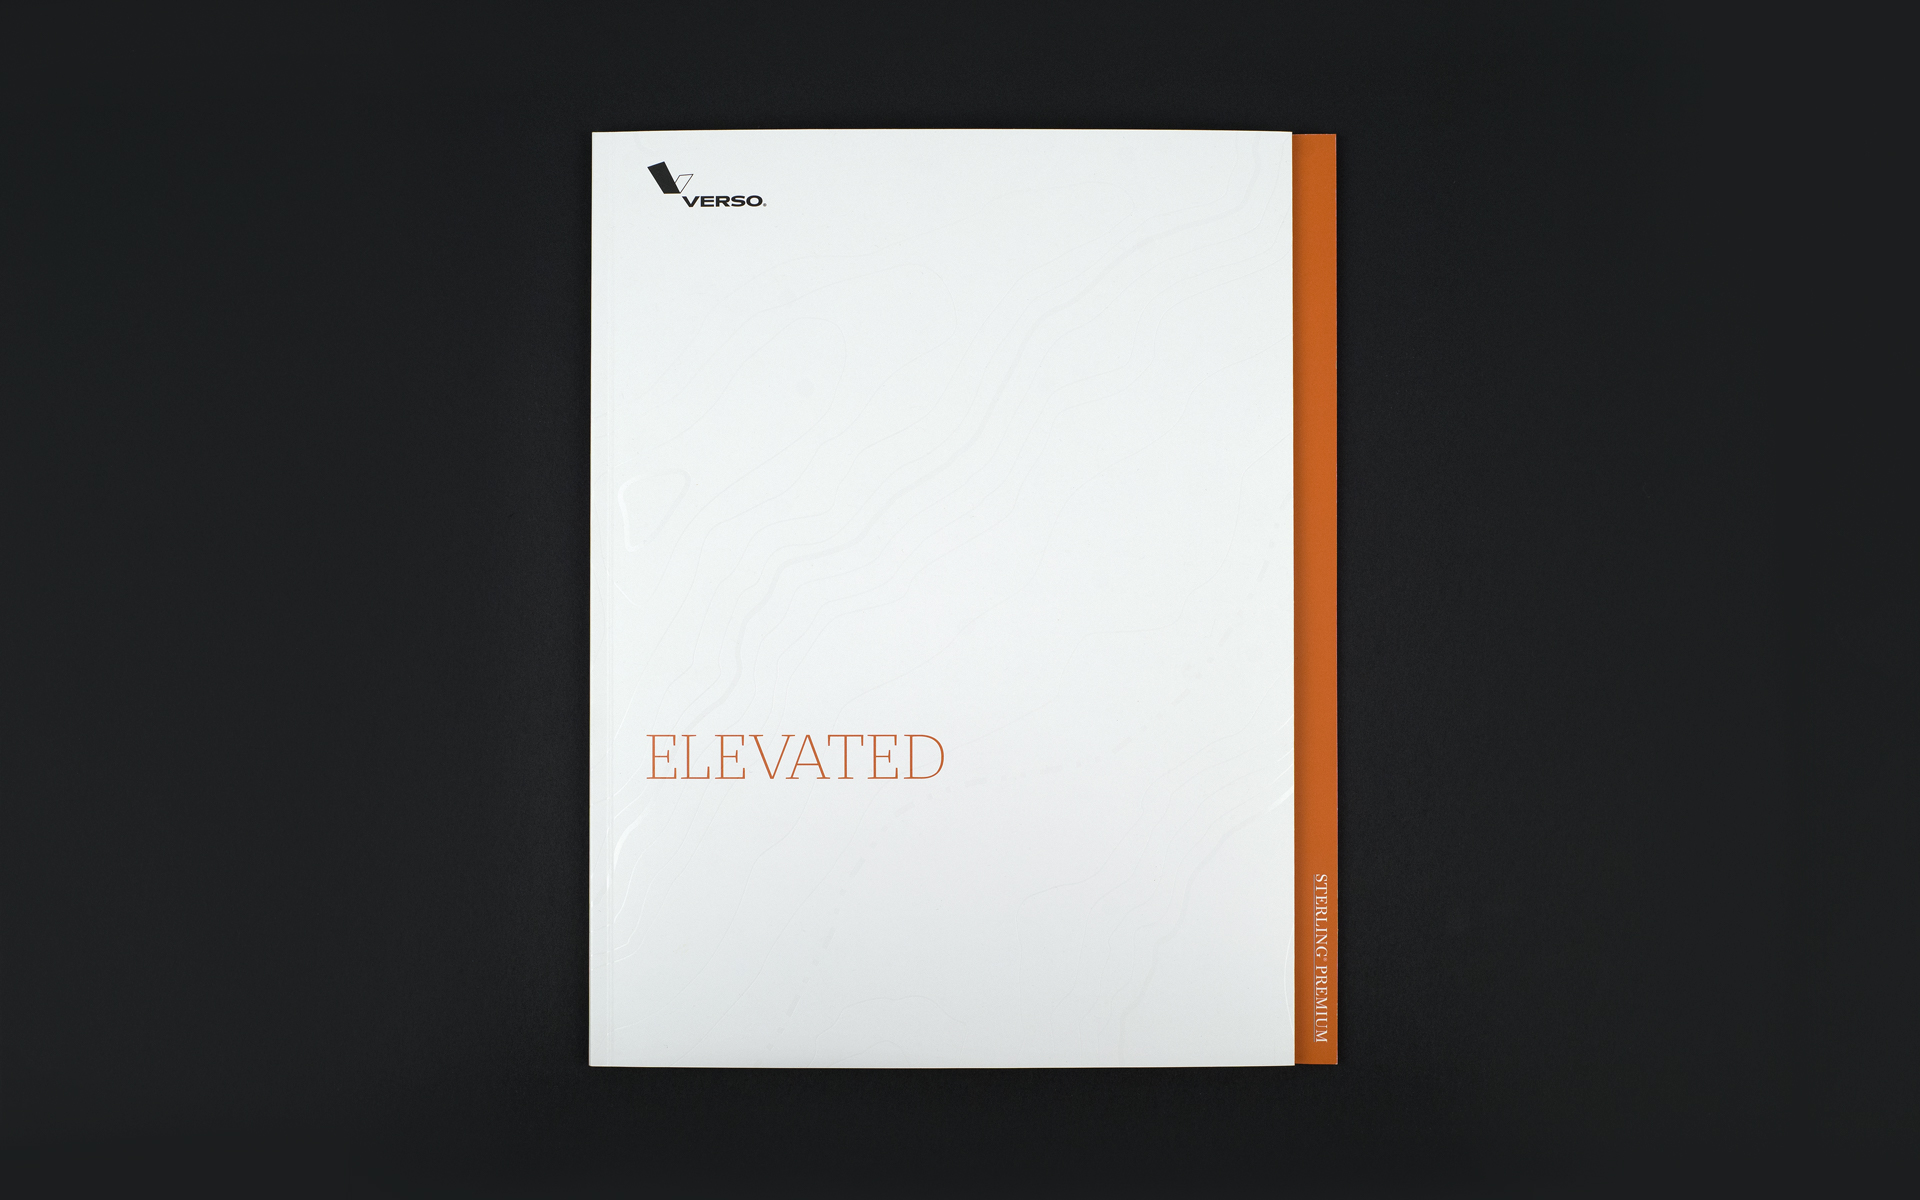 Verso SP Elevated Oru cover